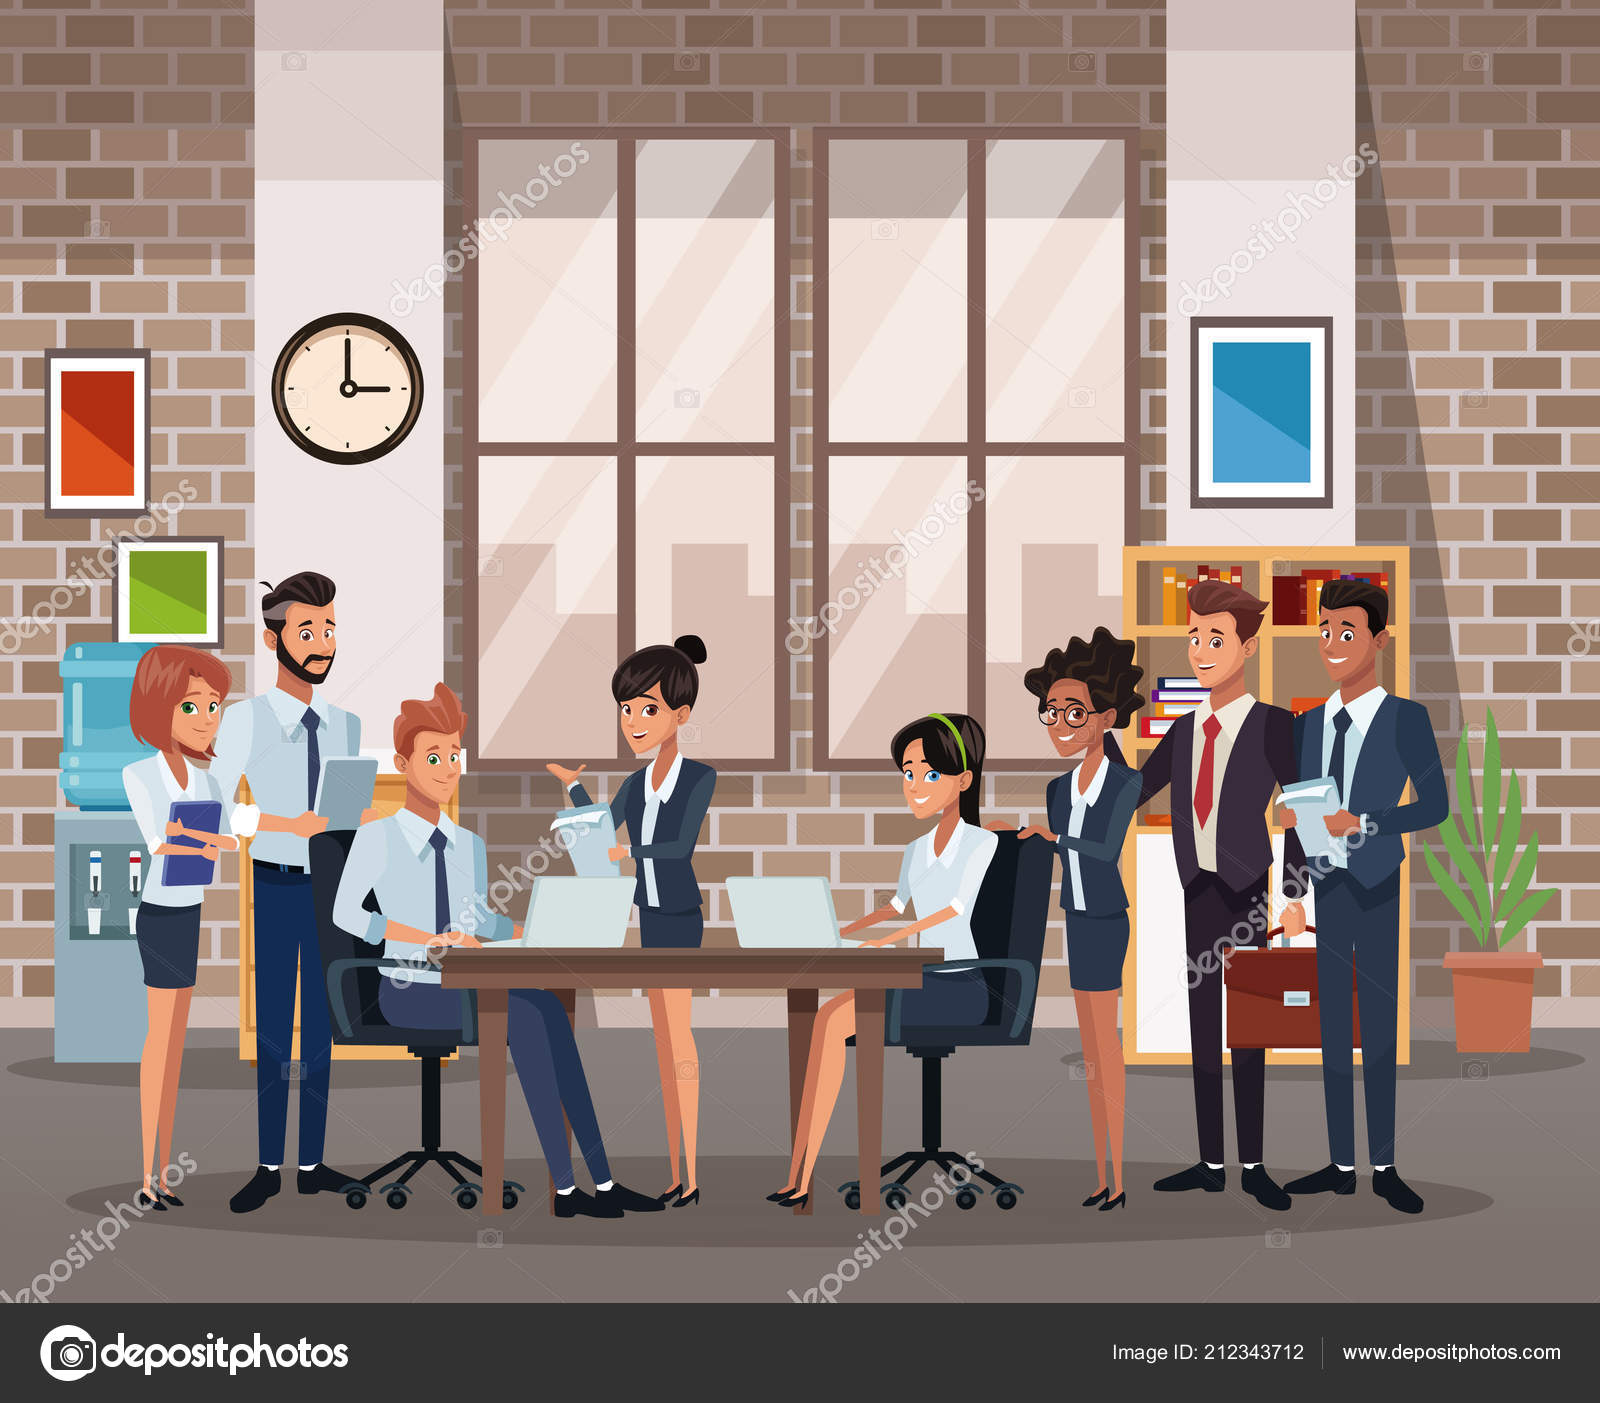 Business coworkers meeting at office cartoons vector illustration graphic design